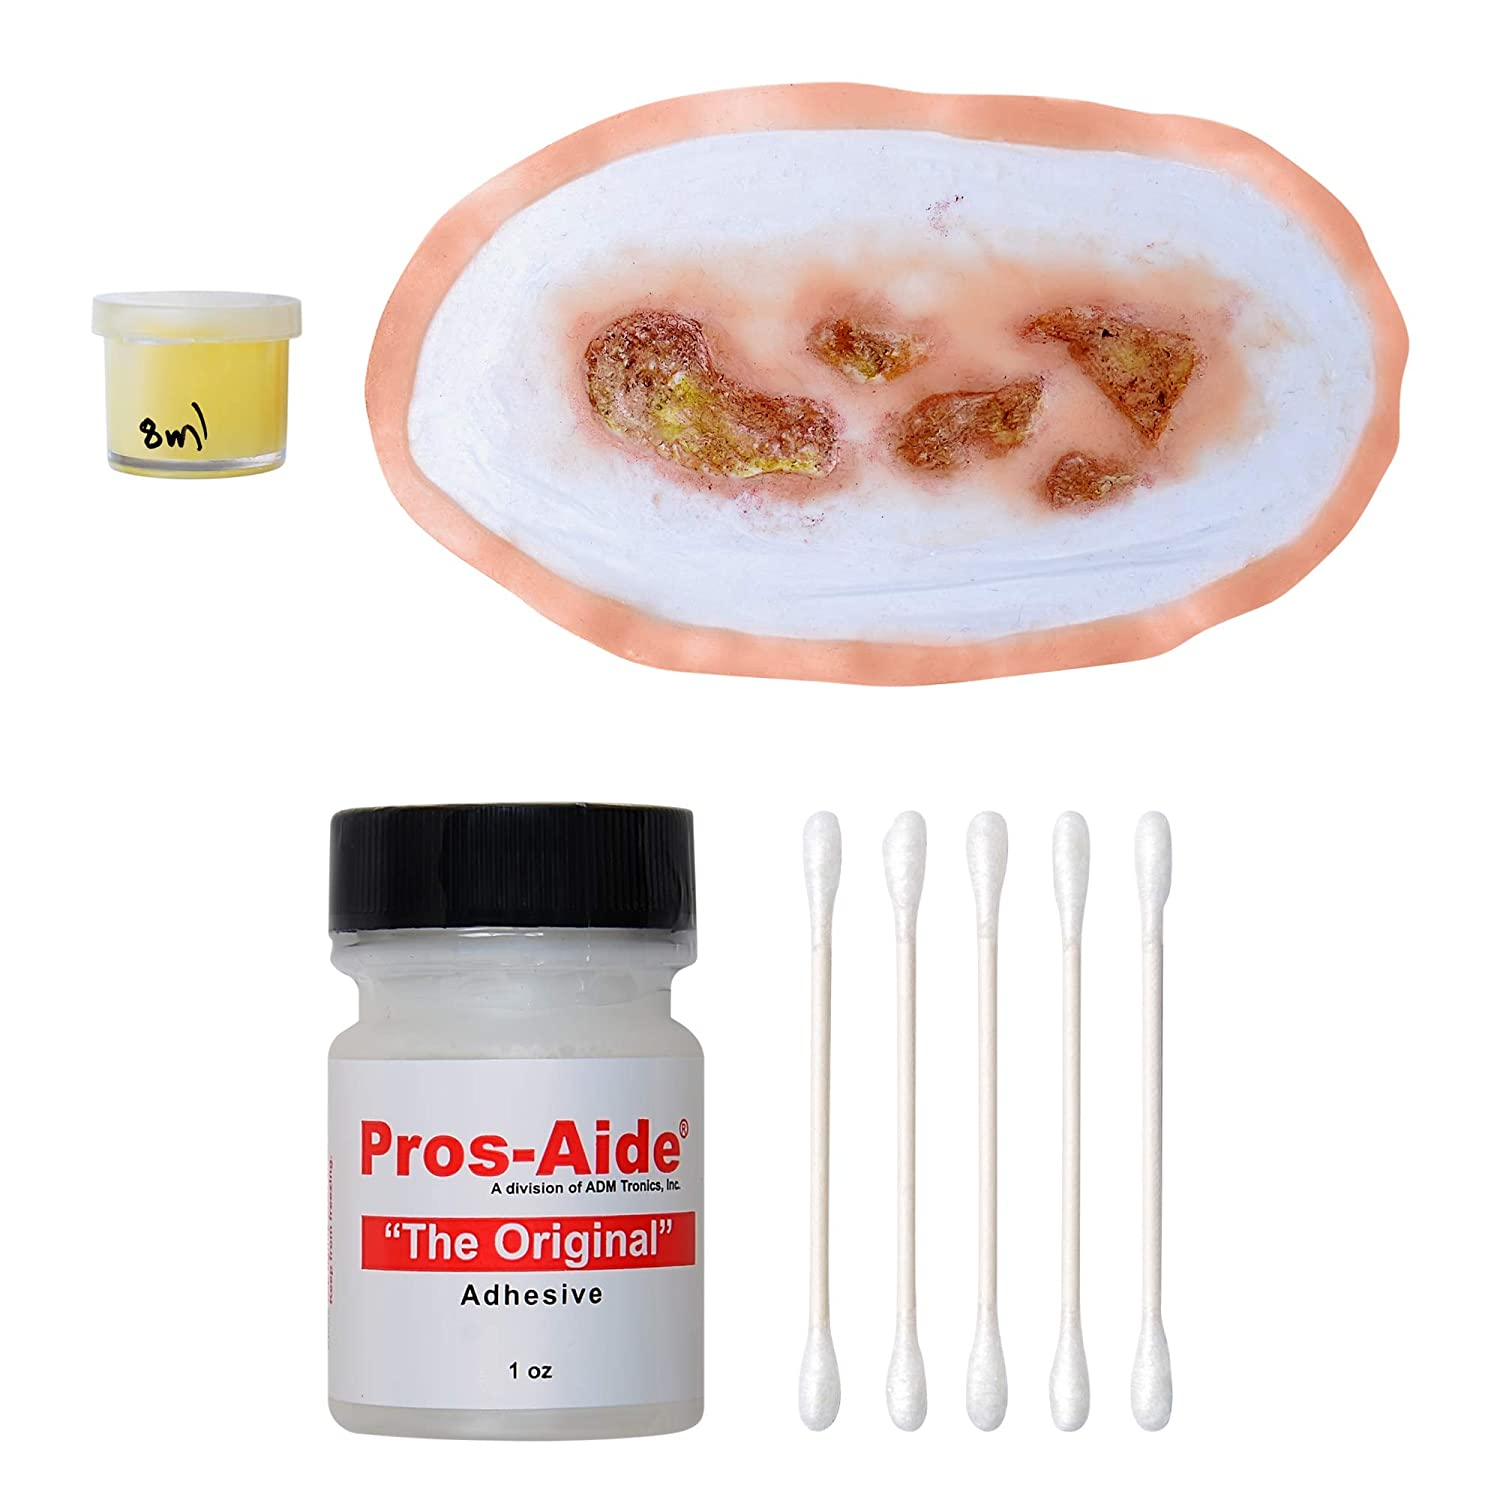 Forensic FX Infected Wound + Synthetic Pus Kit, Pre-Colored Silicone Prosthetic Appliance, Cotton Swabs and 1oz Pros-Aide Adhesive, Special Effects Makeup for Halloween and Theater